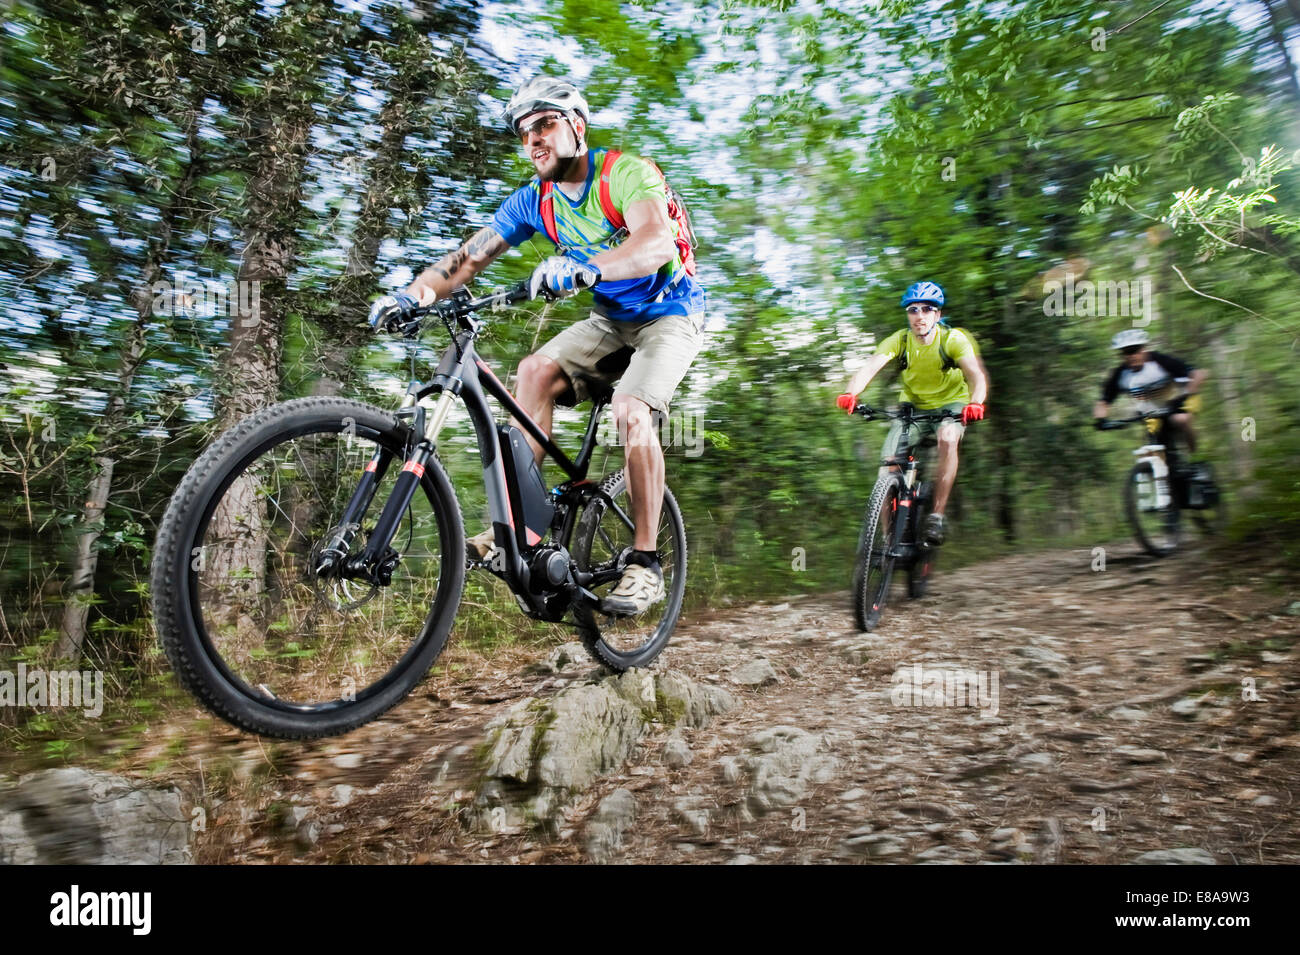 Three Mountainbikers stunt racing forest track - Stock Image